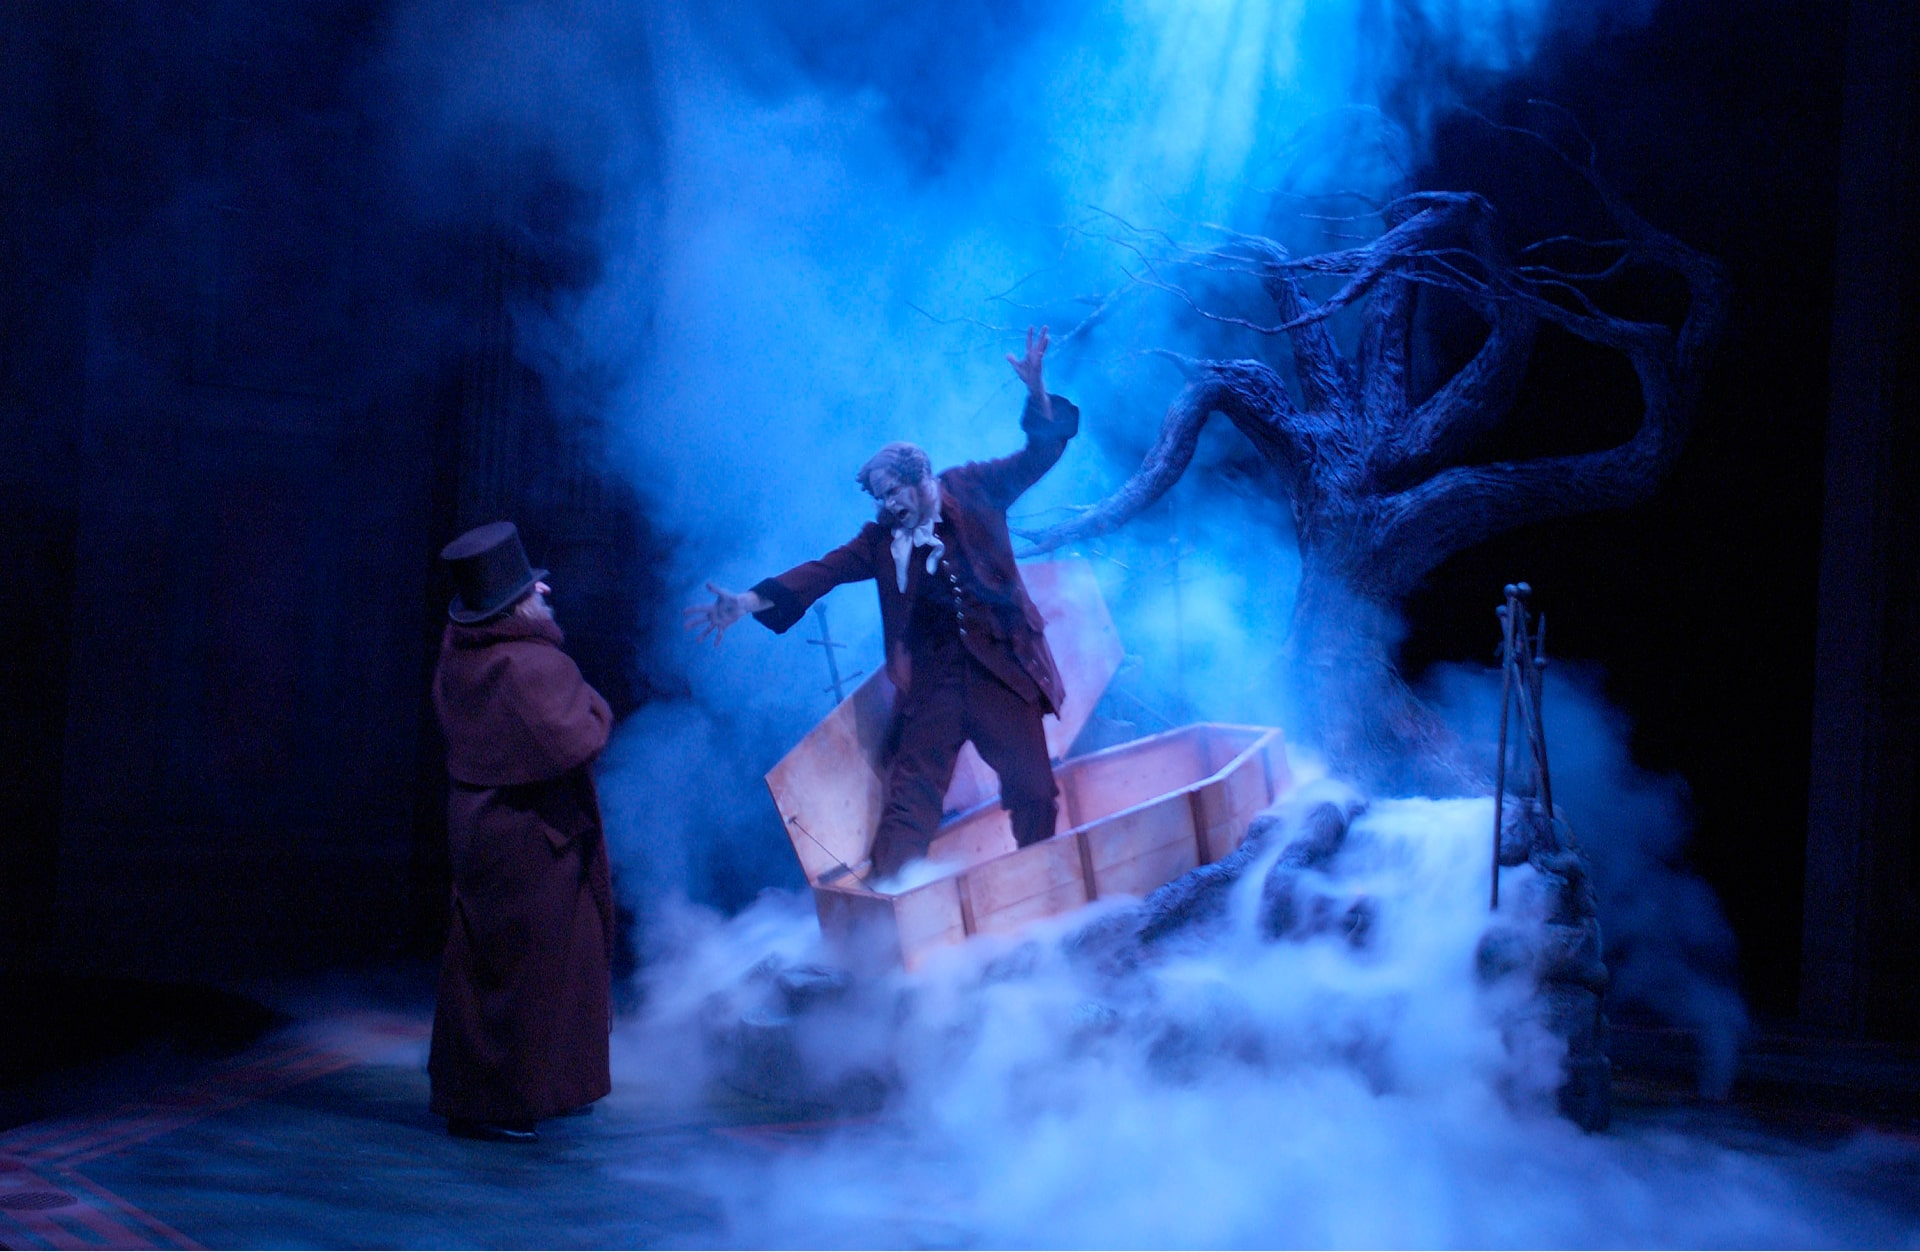 Man in top hat on smoke-filled stage is startled by figure emerging from coffin lit by shafts of cold light.